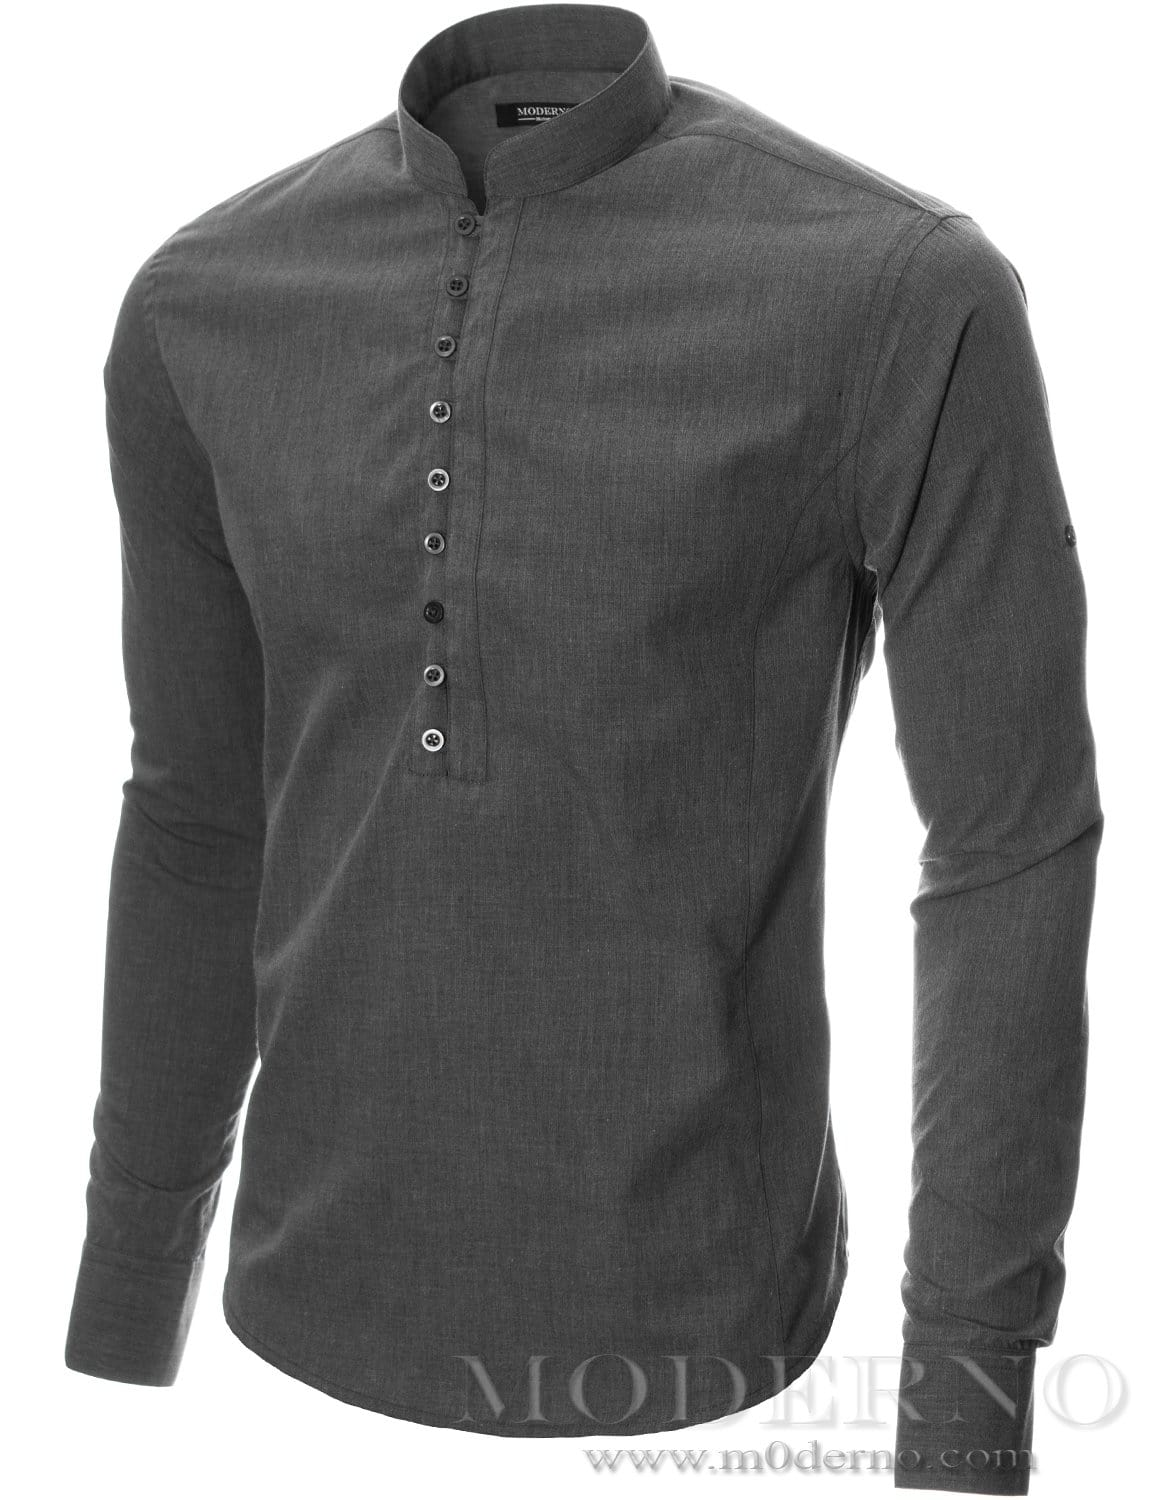 Mens button-down shirt charcoal (MOD1431LS) - MODERNO